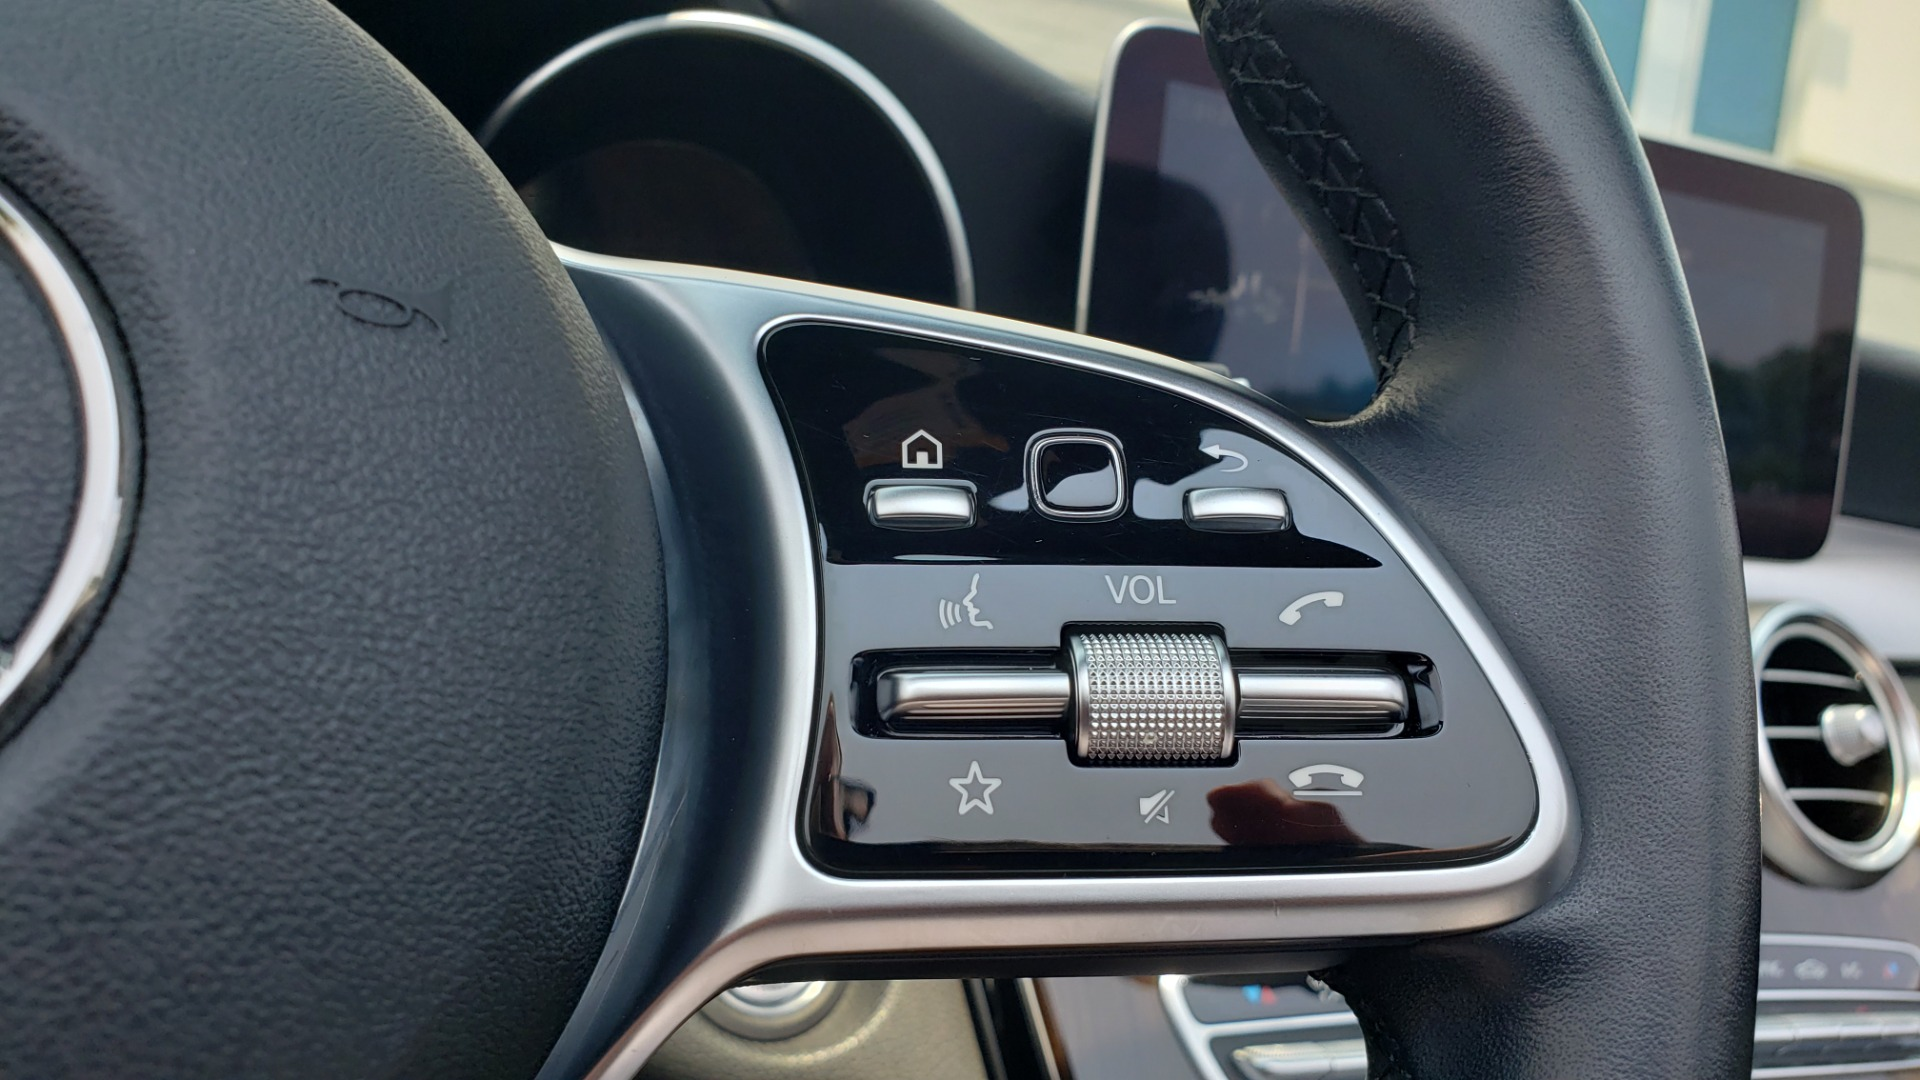 Used 2019 Mercedes-Benz C-CLASS C 300 CABRIOLET 2.0L / AUTO / NAV / HD RADIO / REARVIEW for sale $46,995 at Formula Imports in Charlotte NC 28227 45